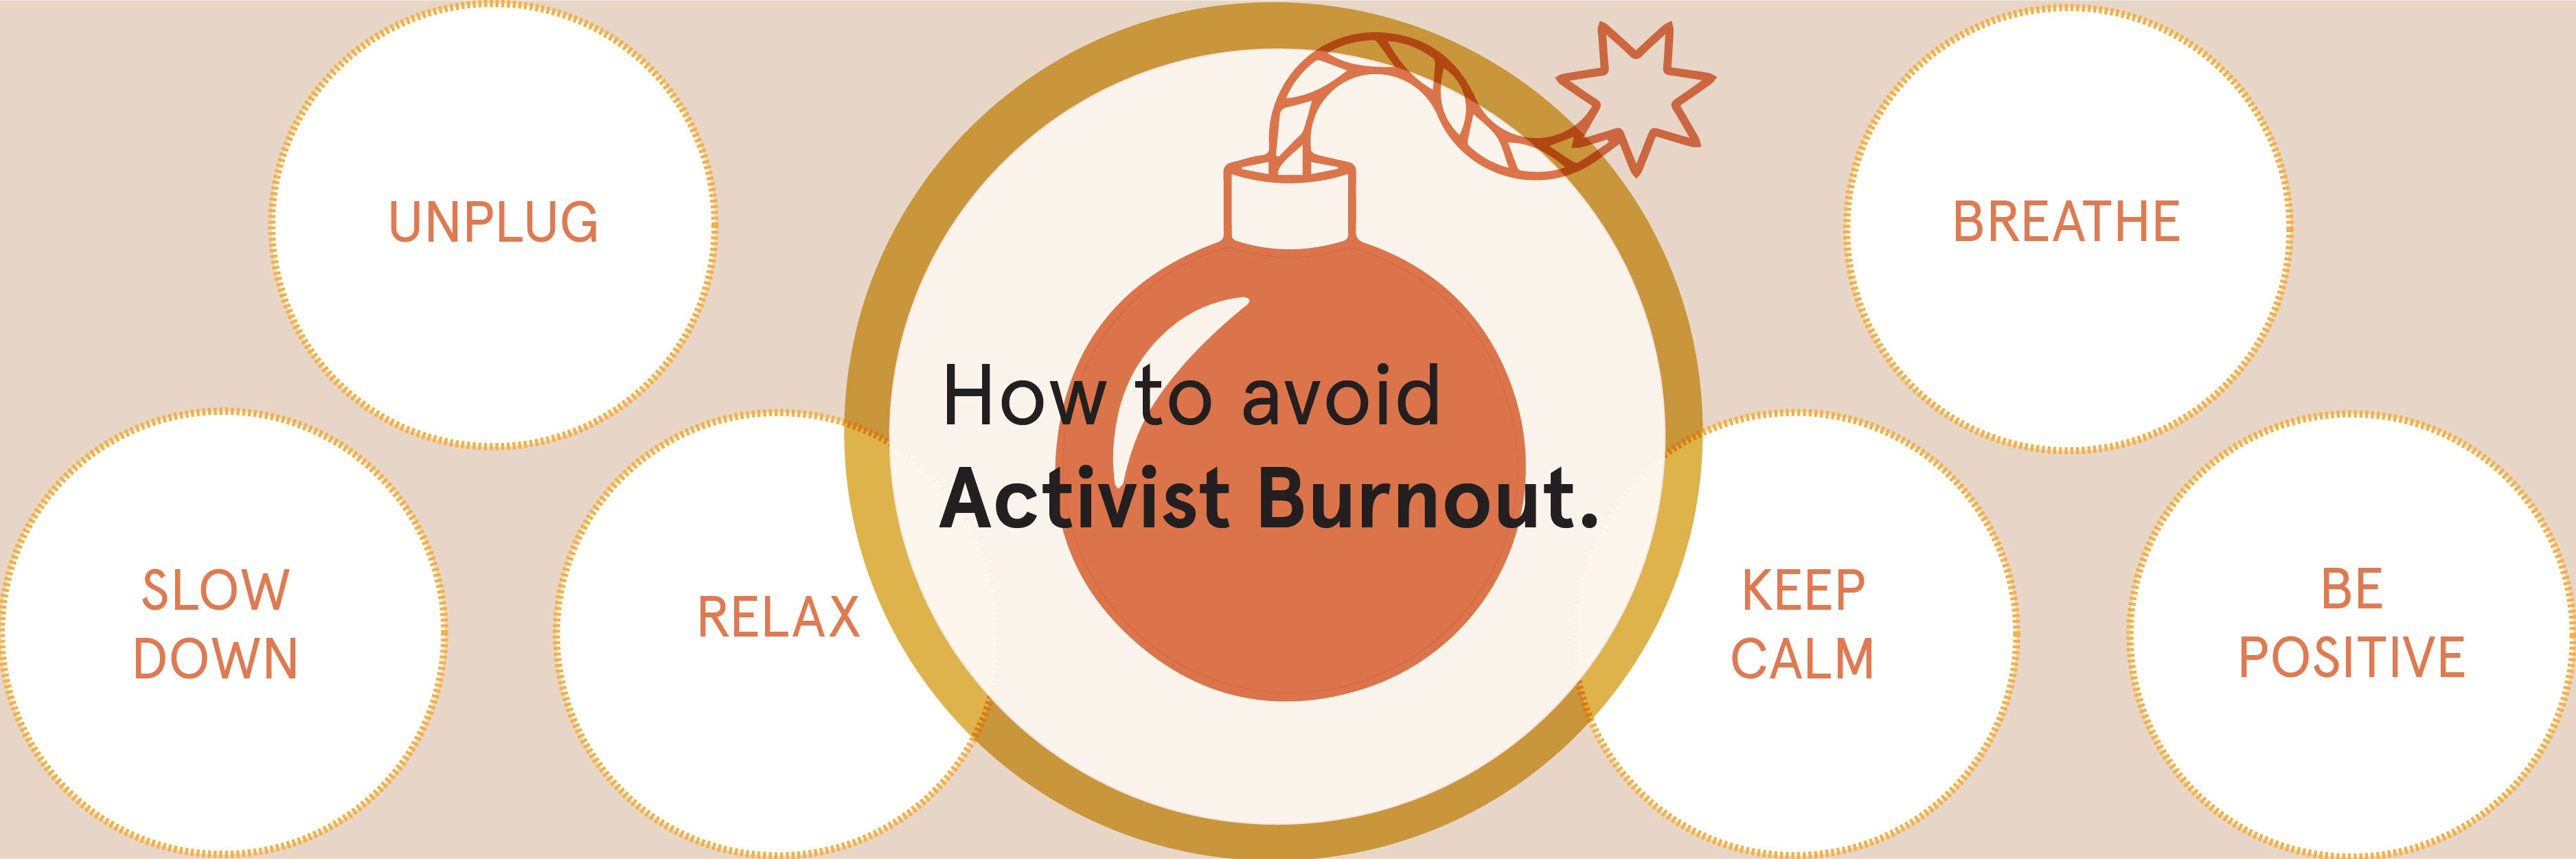 How to Avoid Activist Burnout